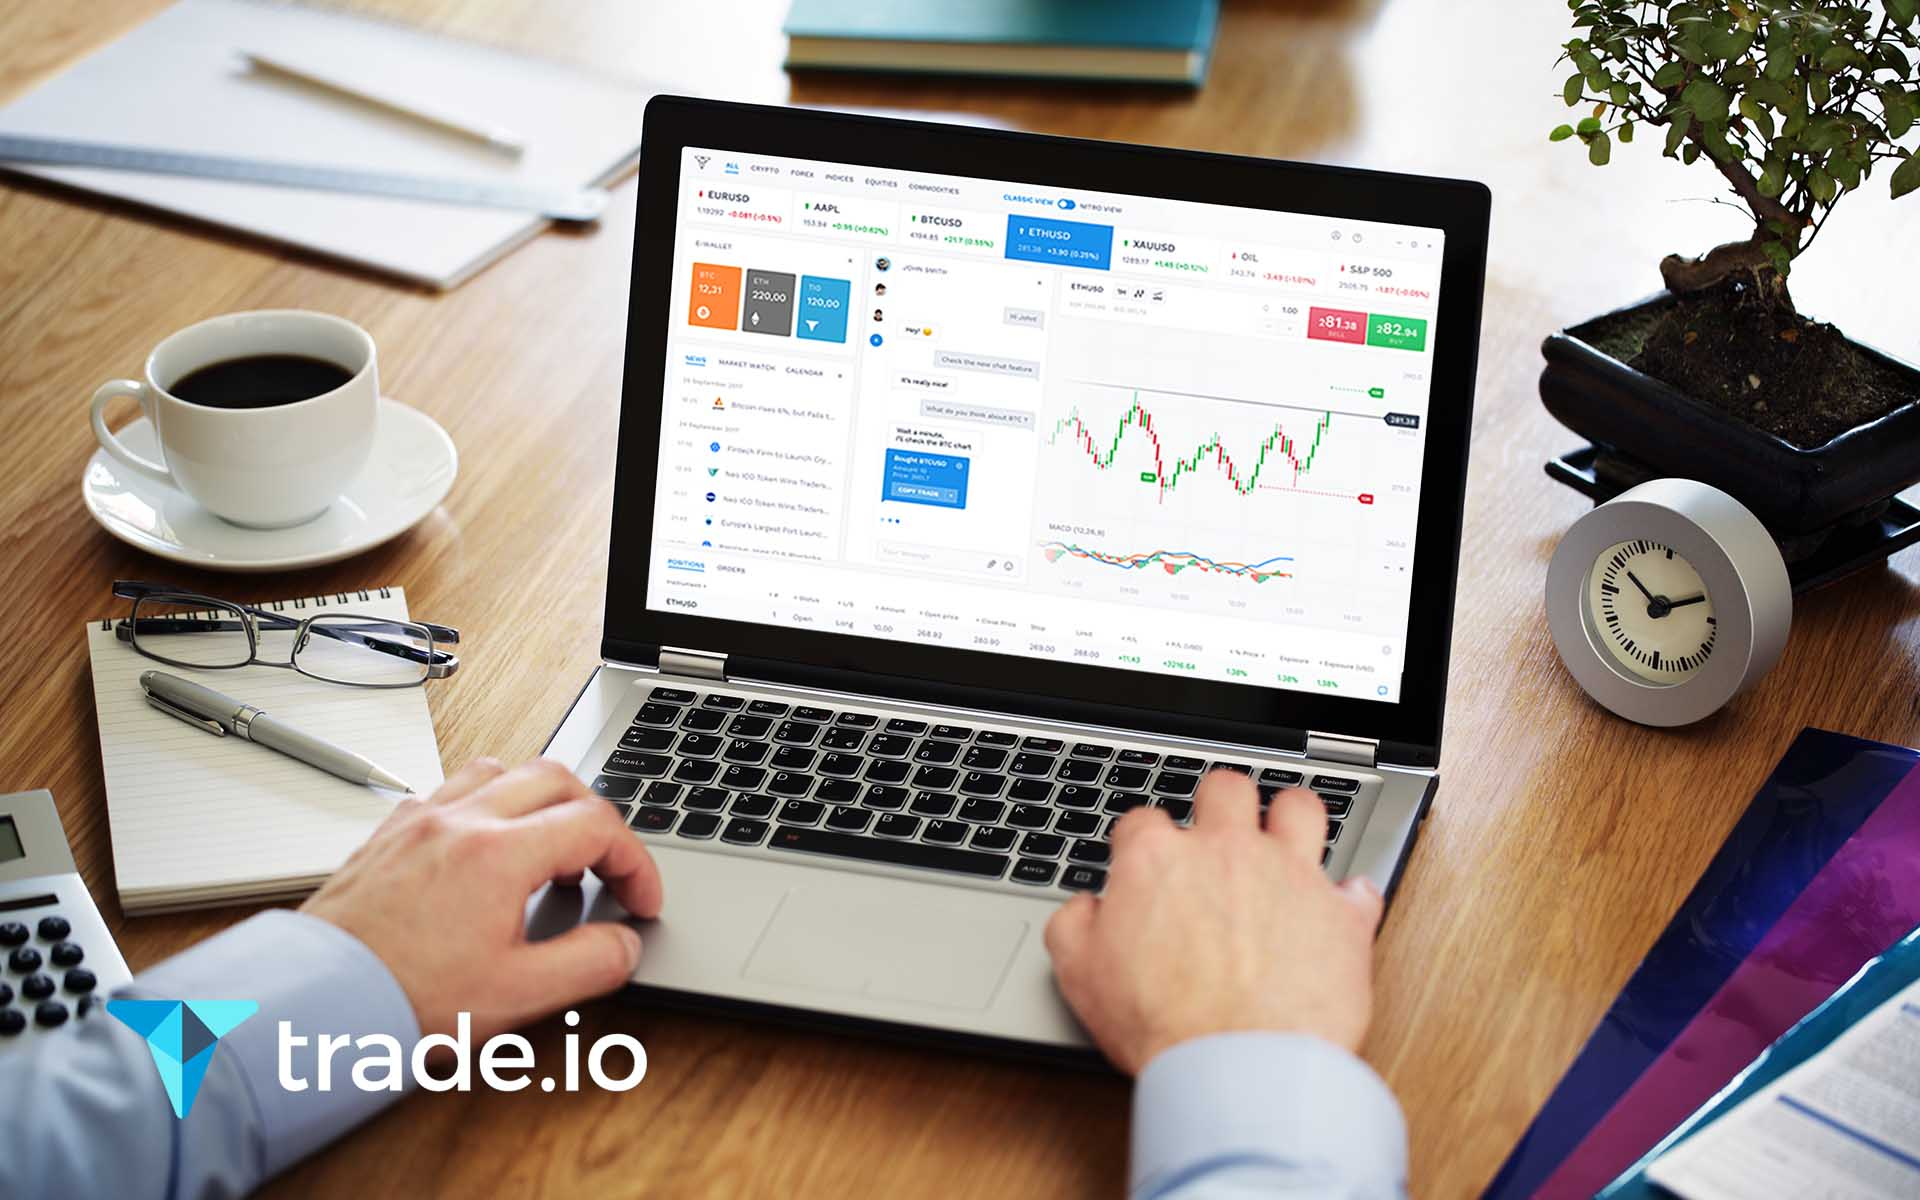 Innovative trade.io Exchange Launching April 1